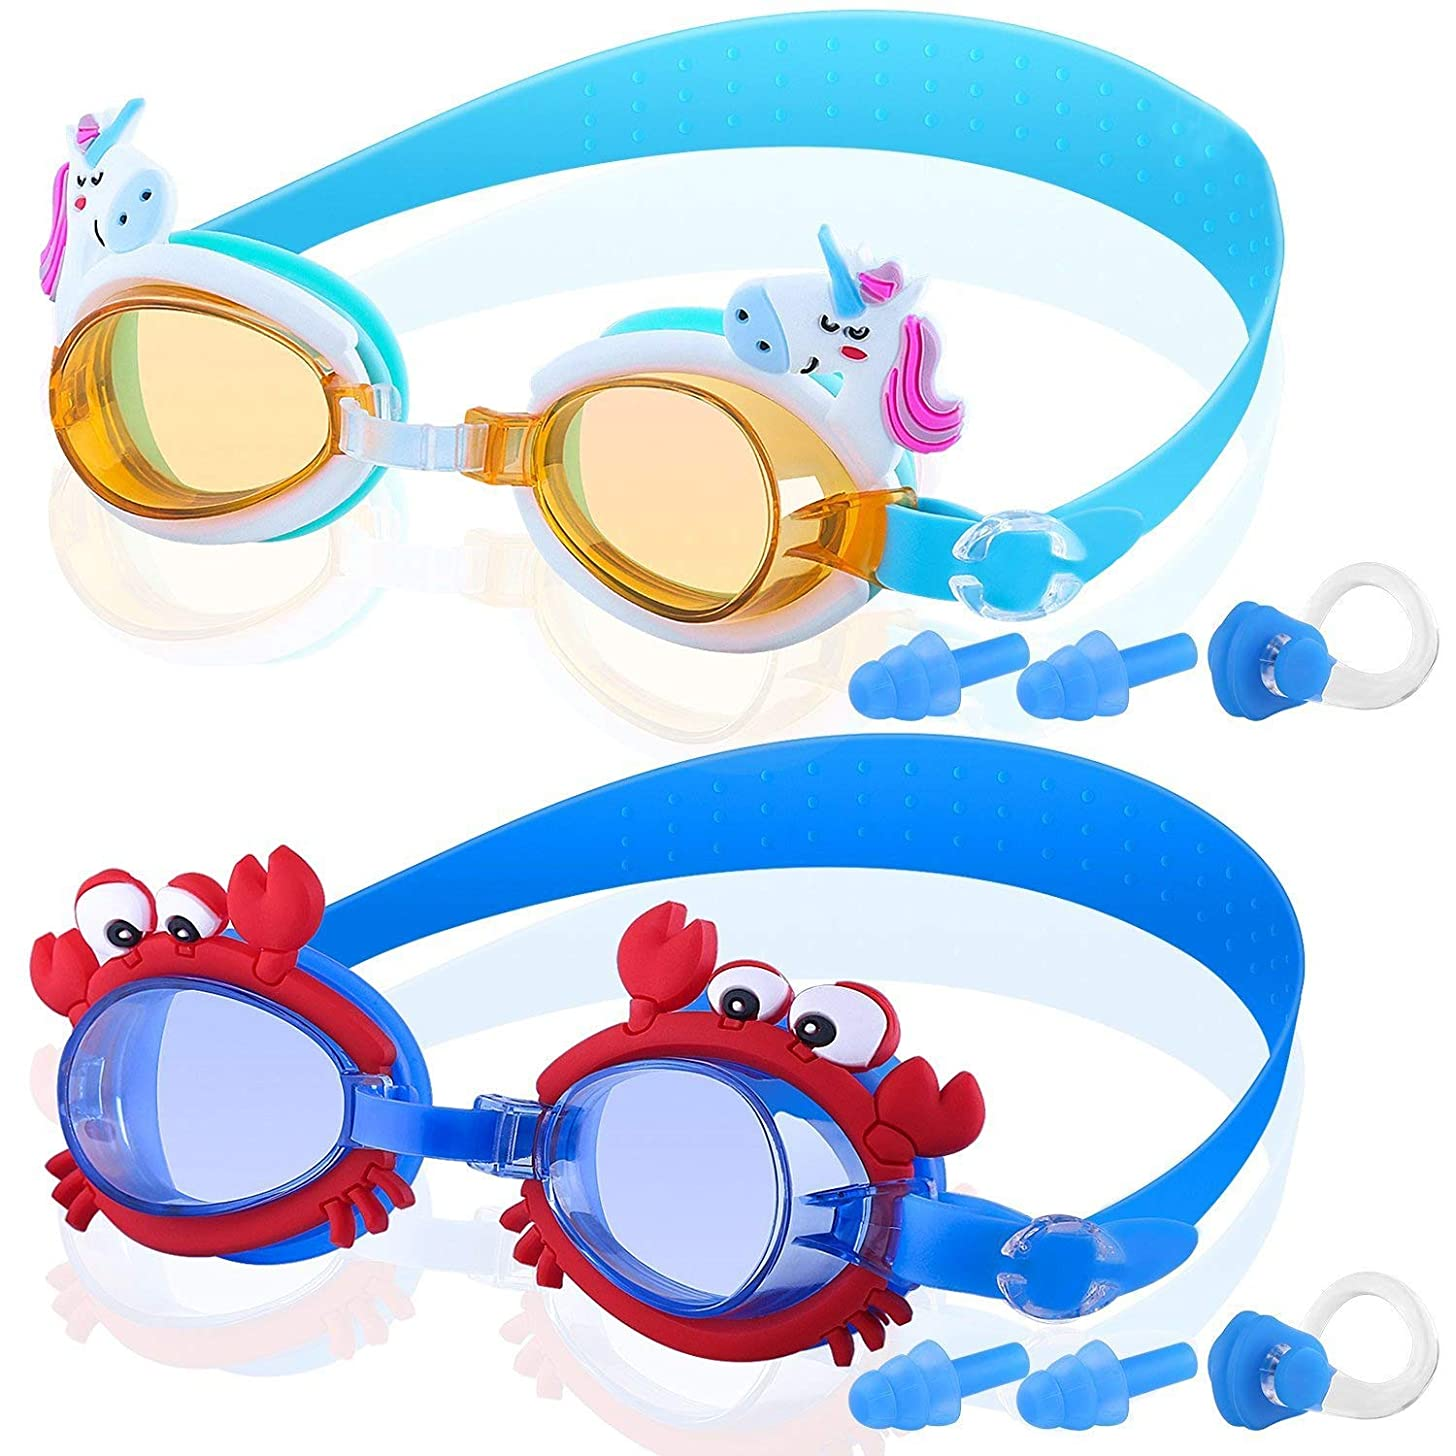 COOLOO Kids Swim Goggles, Pack of 2, Swimming Glasses for Children and Early Teens from 3 to 15 Years Old, Anti-Fog, Waterproof, UV Protection